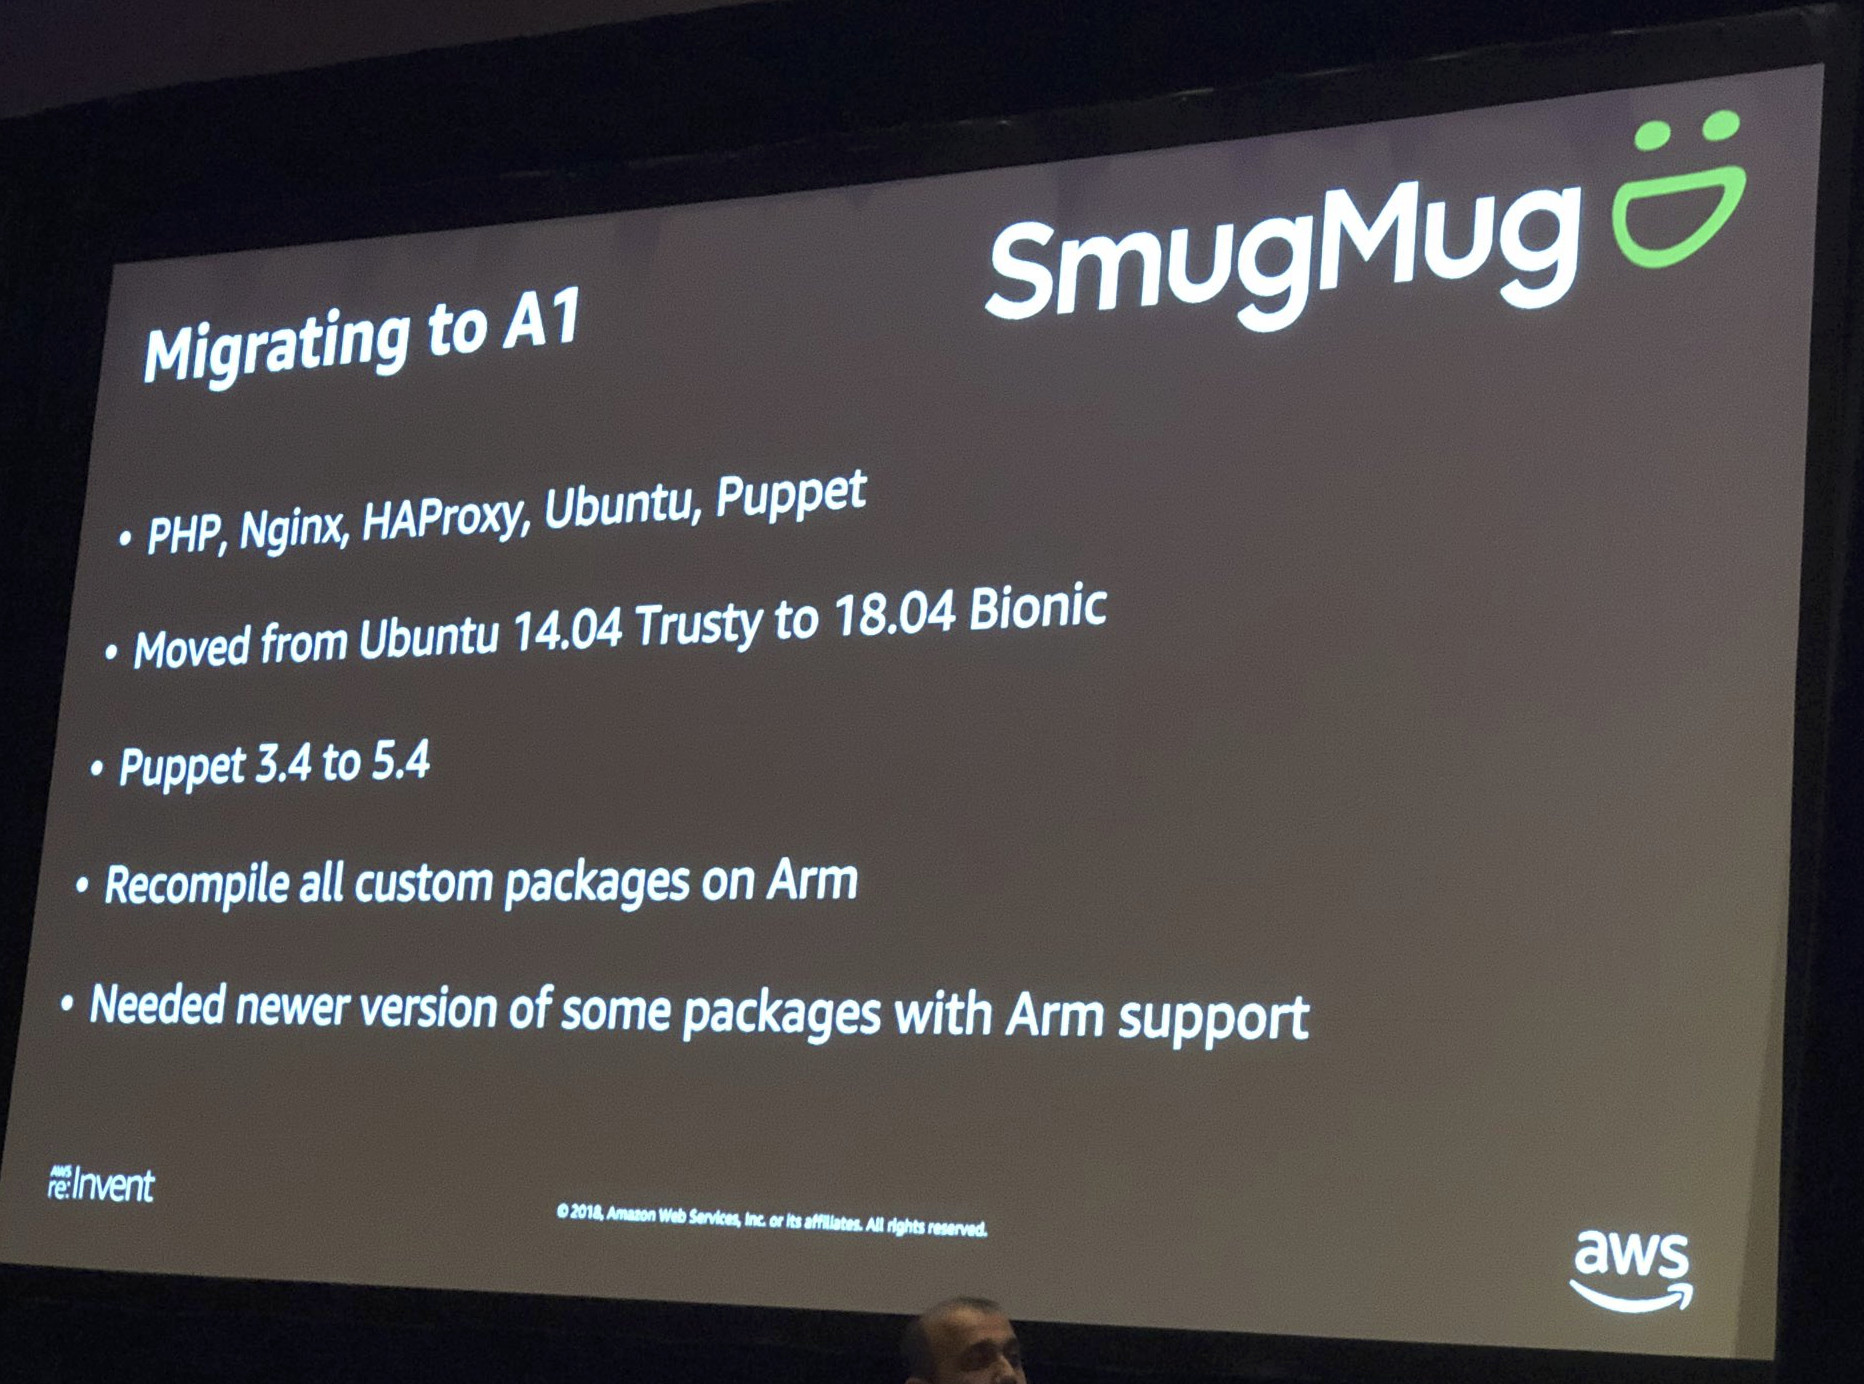 Amazon-Arm-SmugMug-Large.jpg